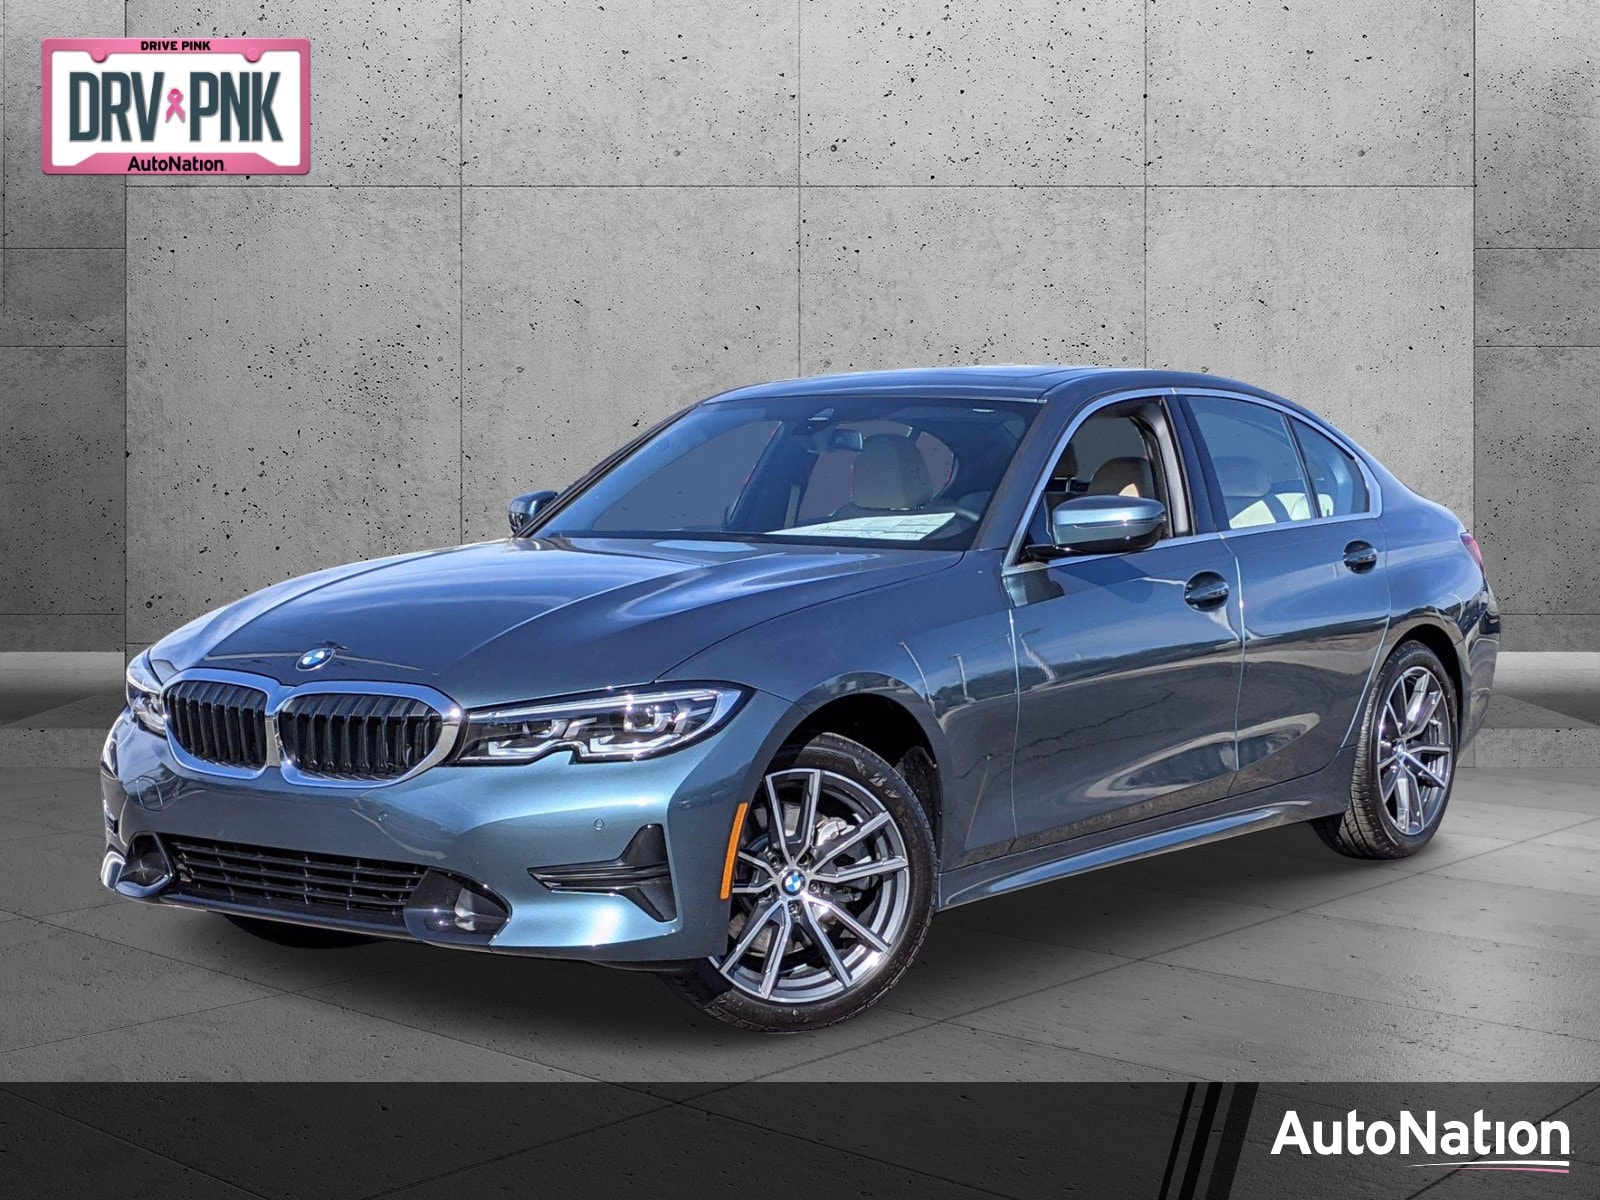 New Bmw Cars Savs For Sale In Tucson Az New Inventory